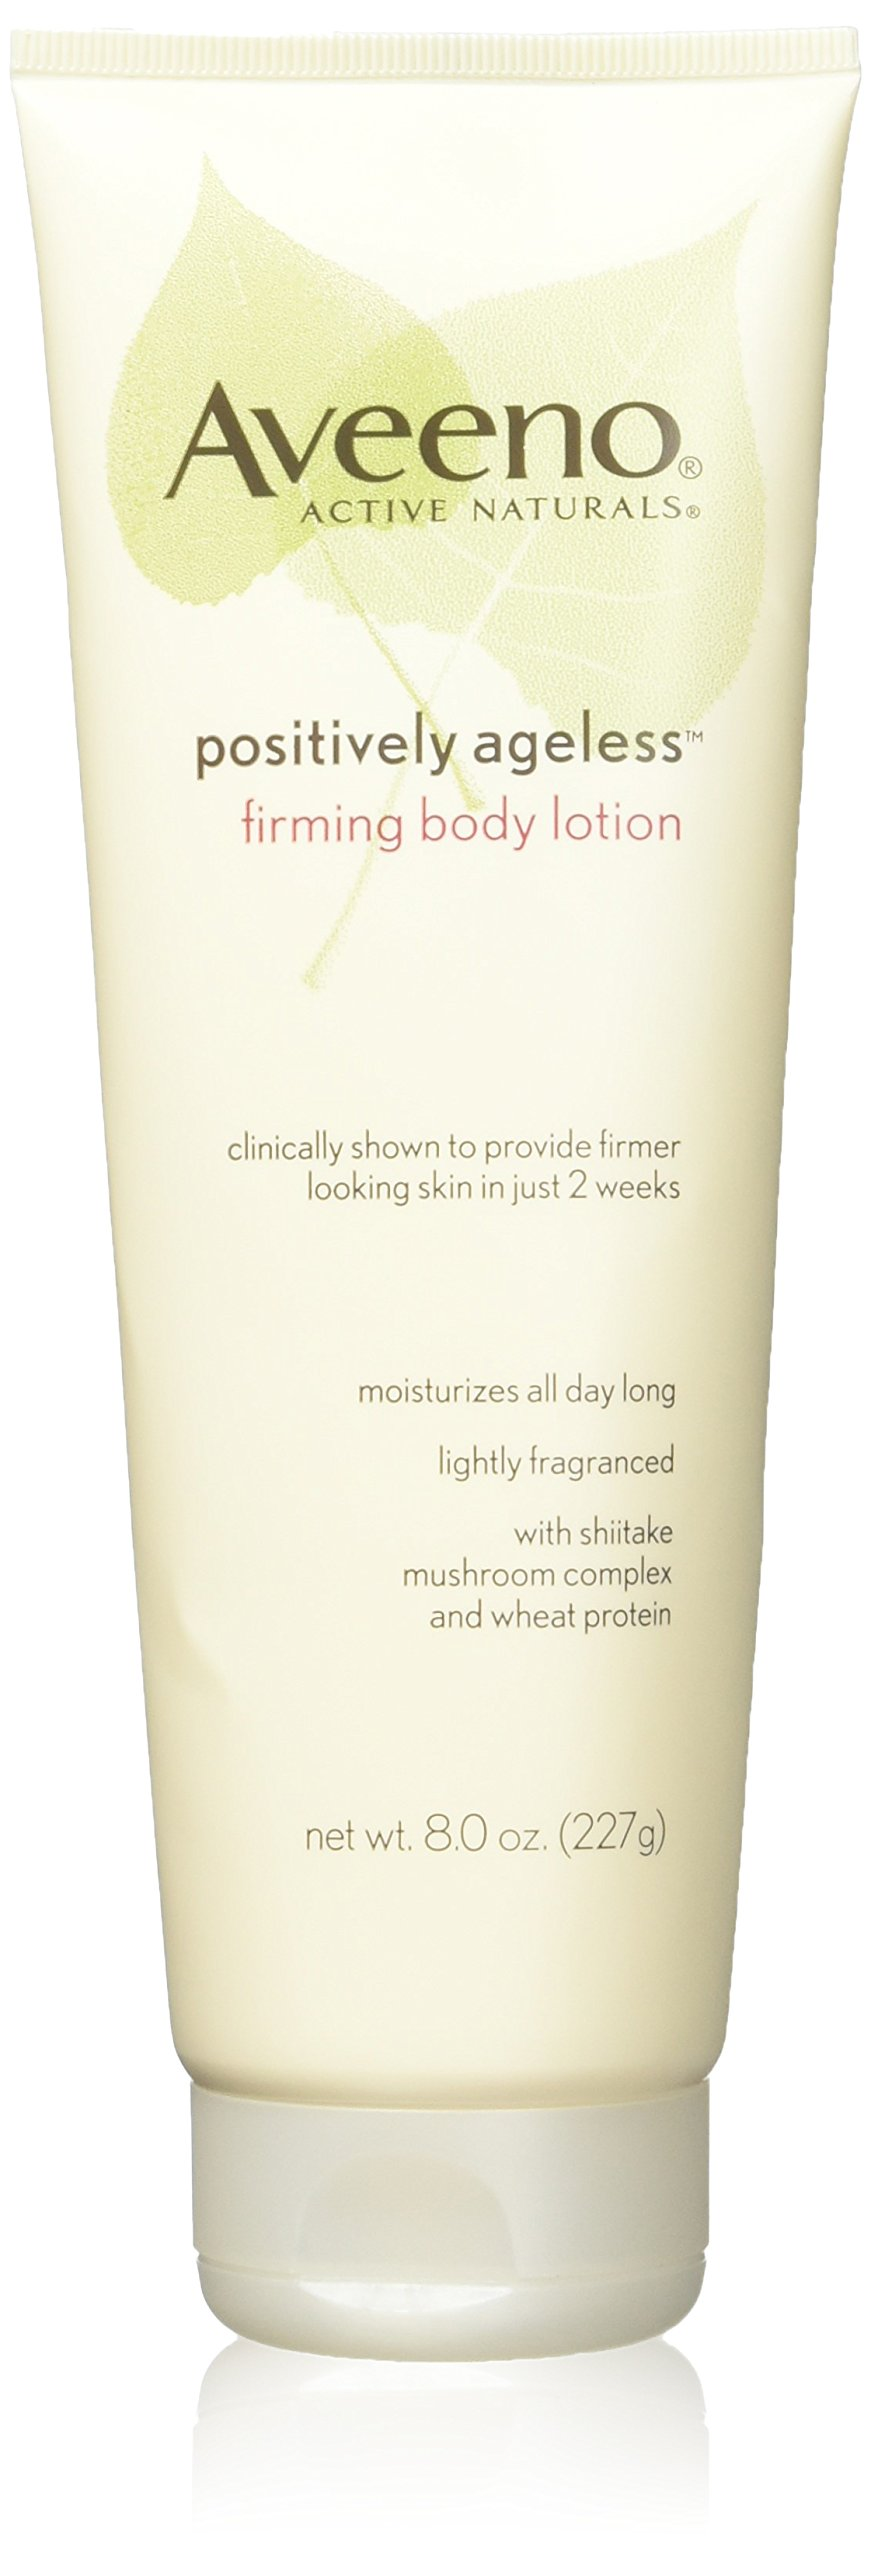 Aveeno Active Naturals - Positively Ageless Firming Body Lotion - Firmer Looking Skin In Just 2 Weeks - Net Wt. 8 OZ (227 g) Each - Pack of 3 by Aveeno